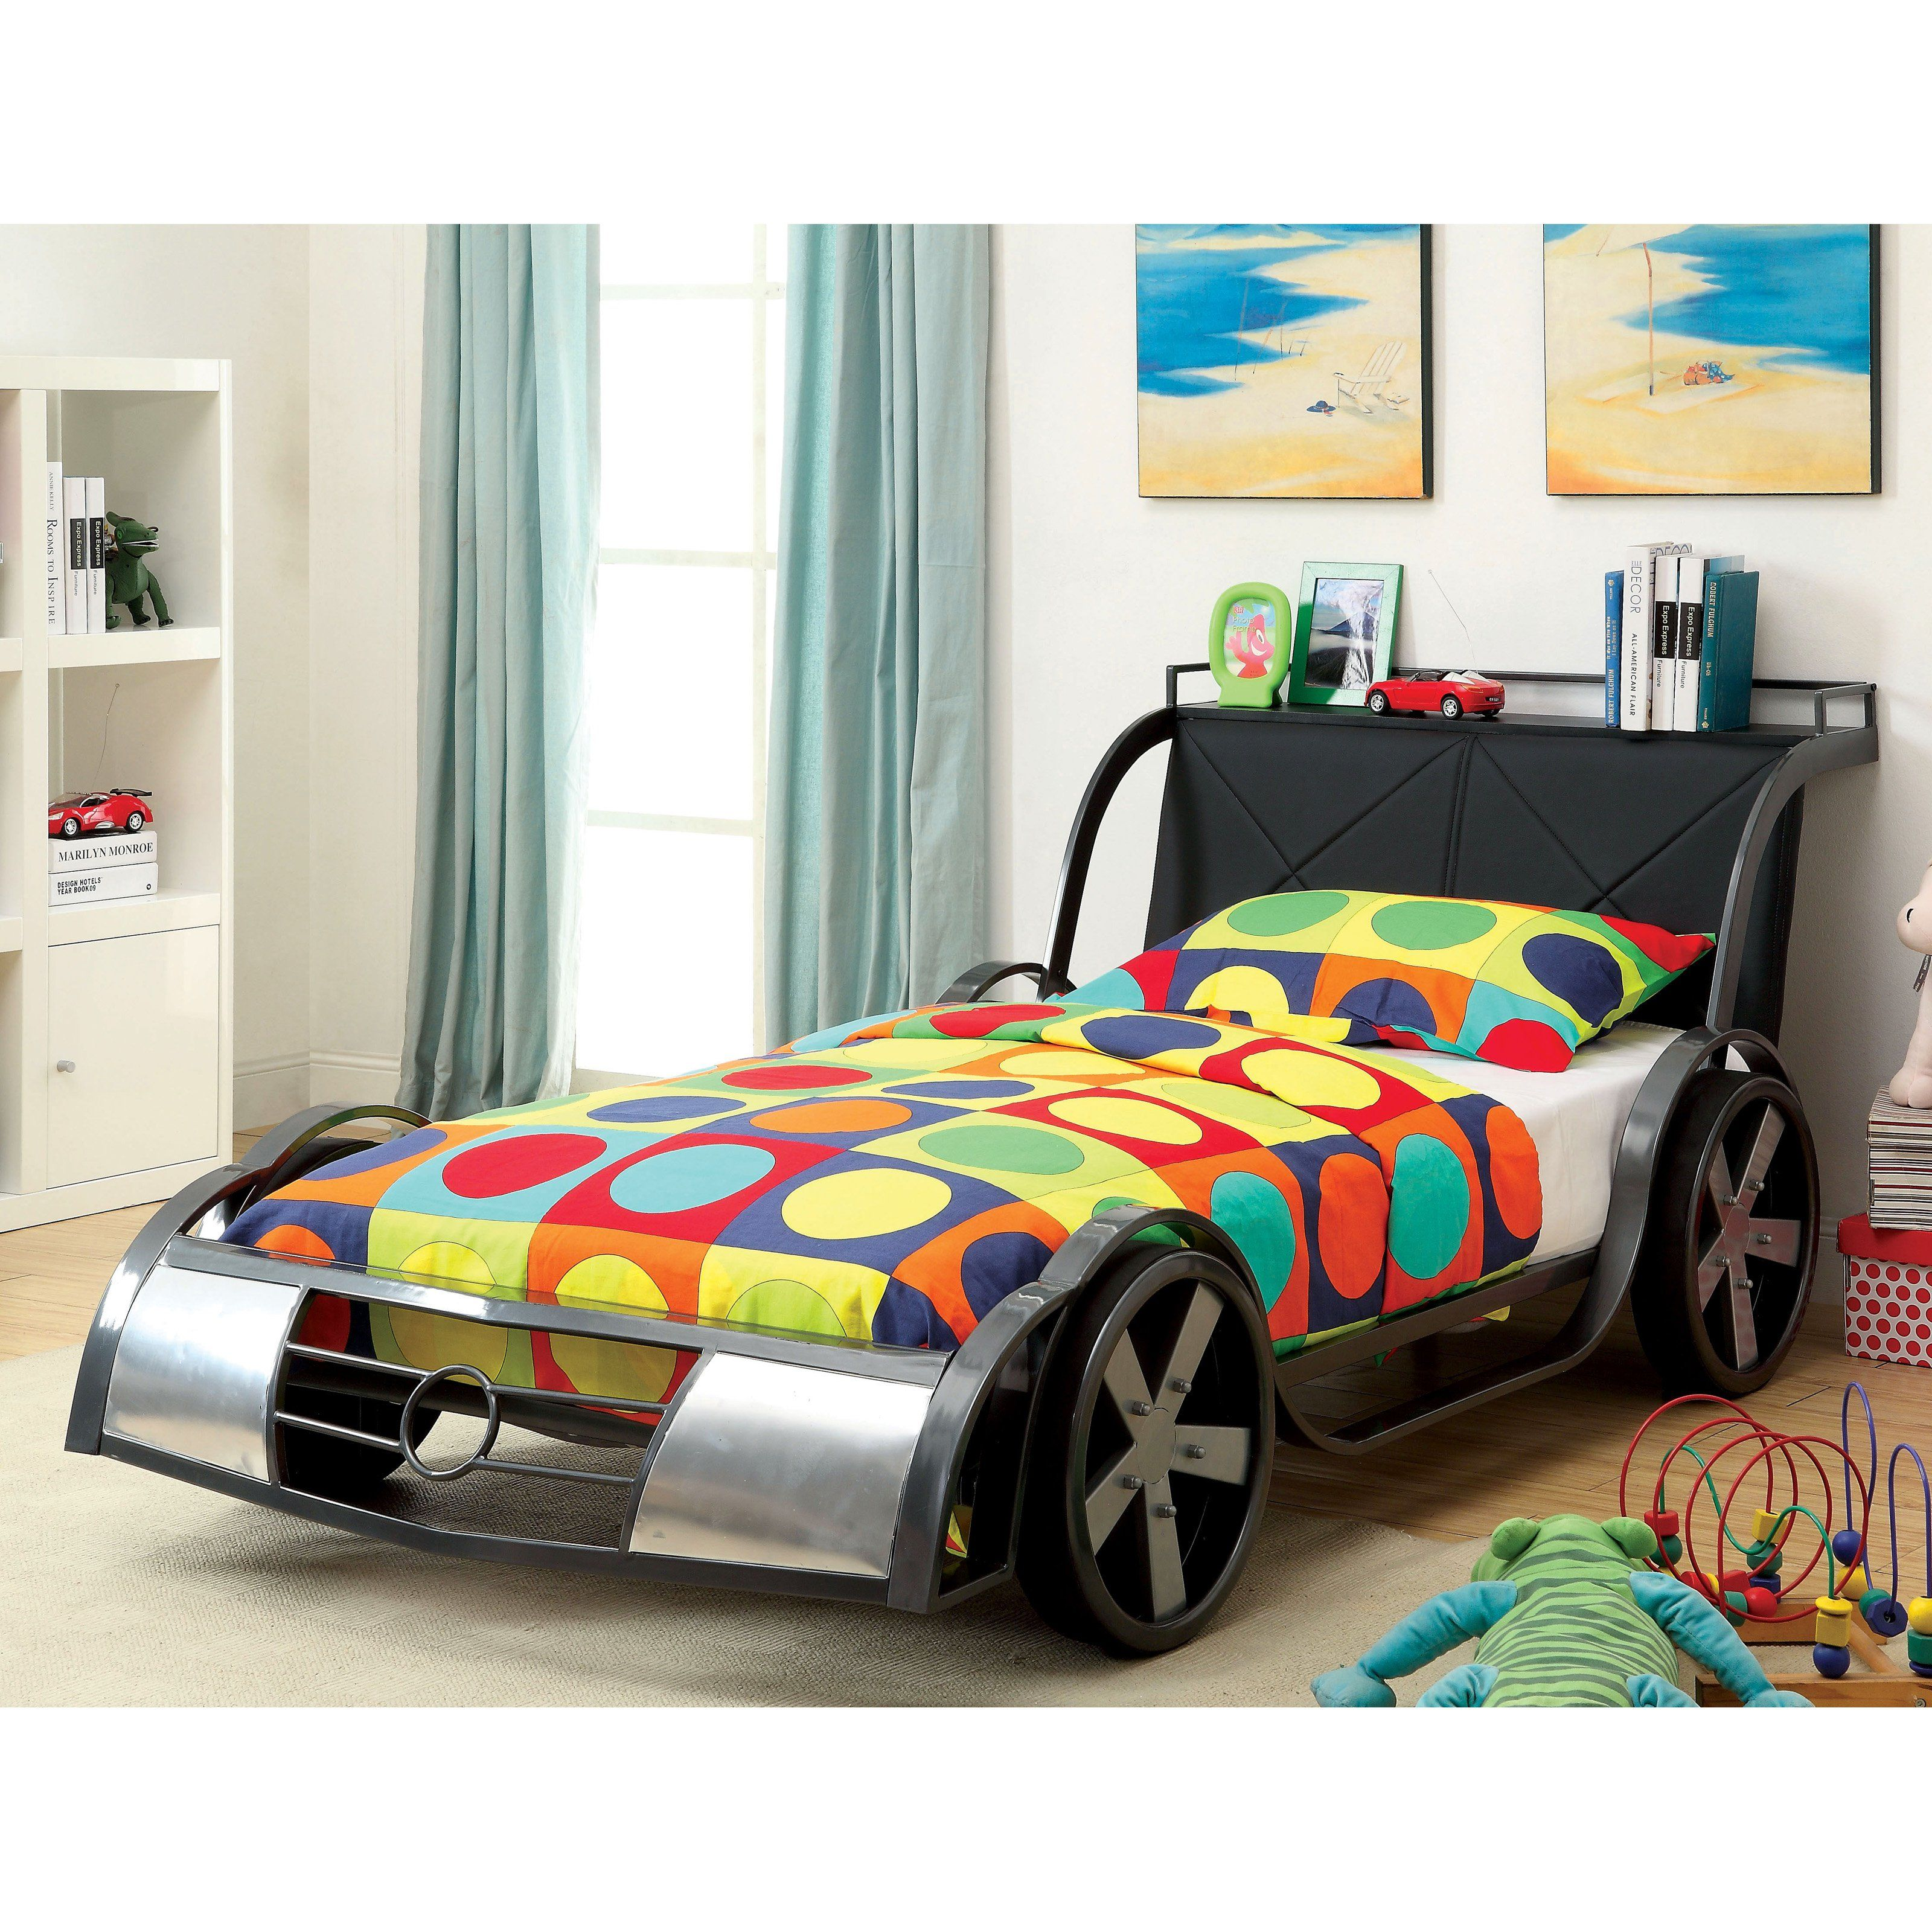 Furniture of America Indy Kid 500 Youth Racer Bed - Twin ...